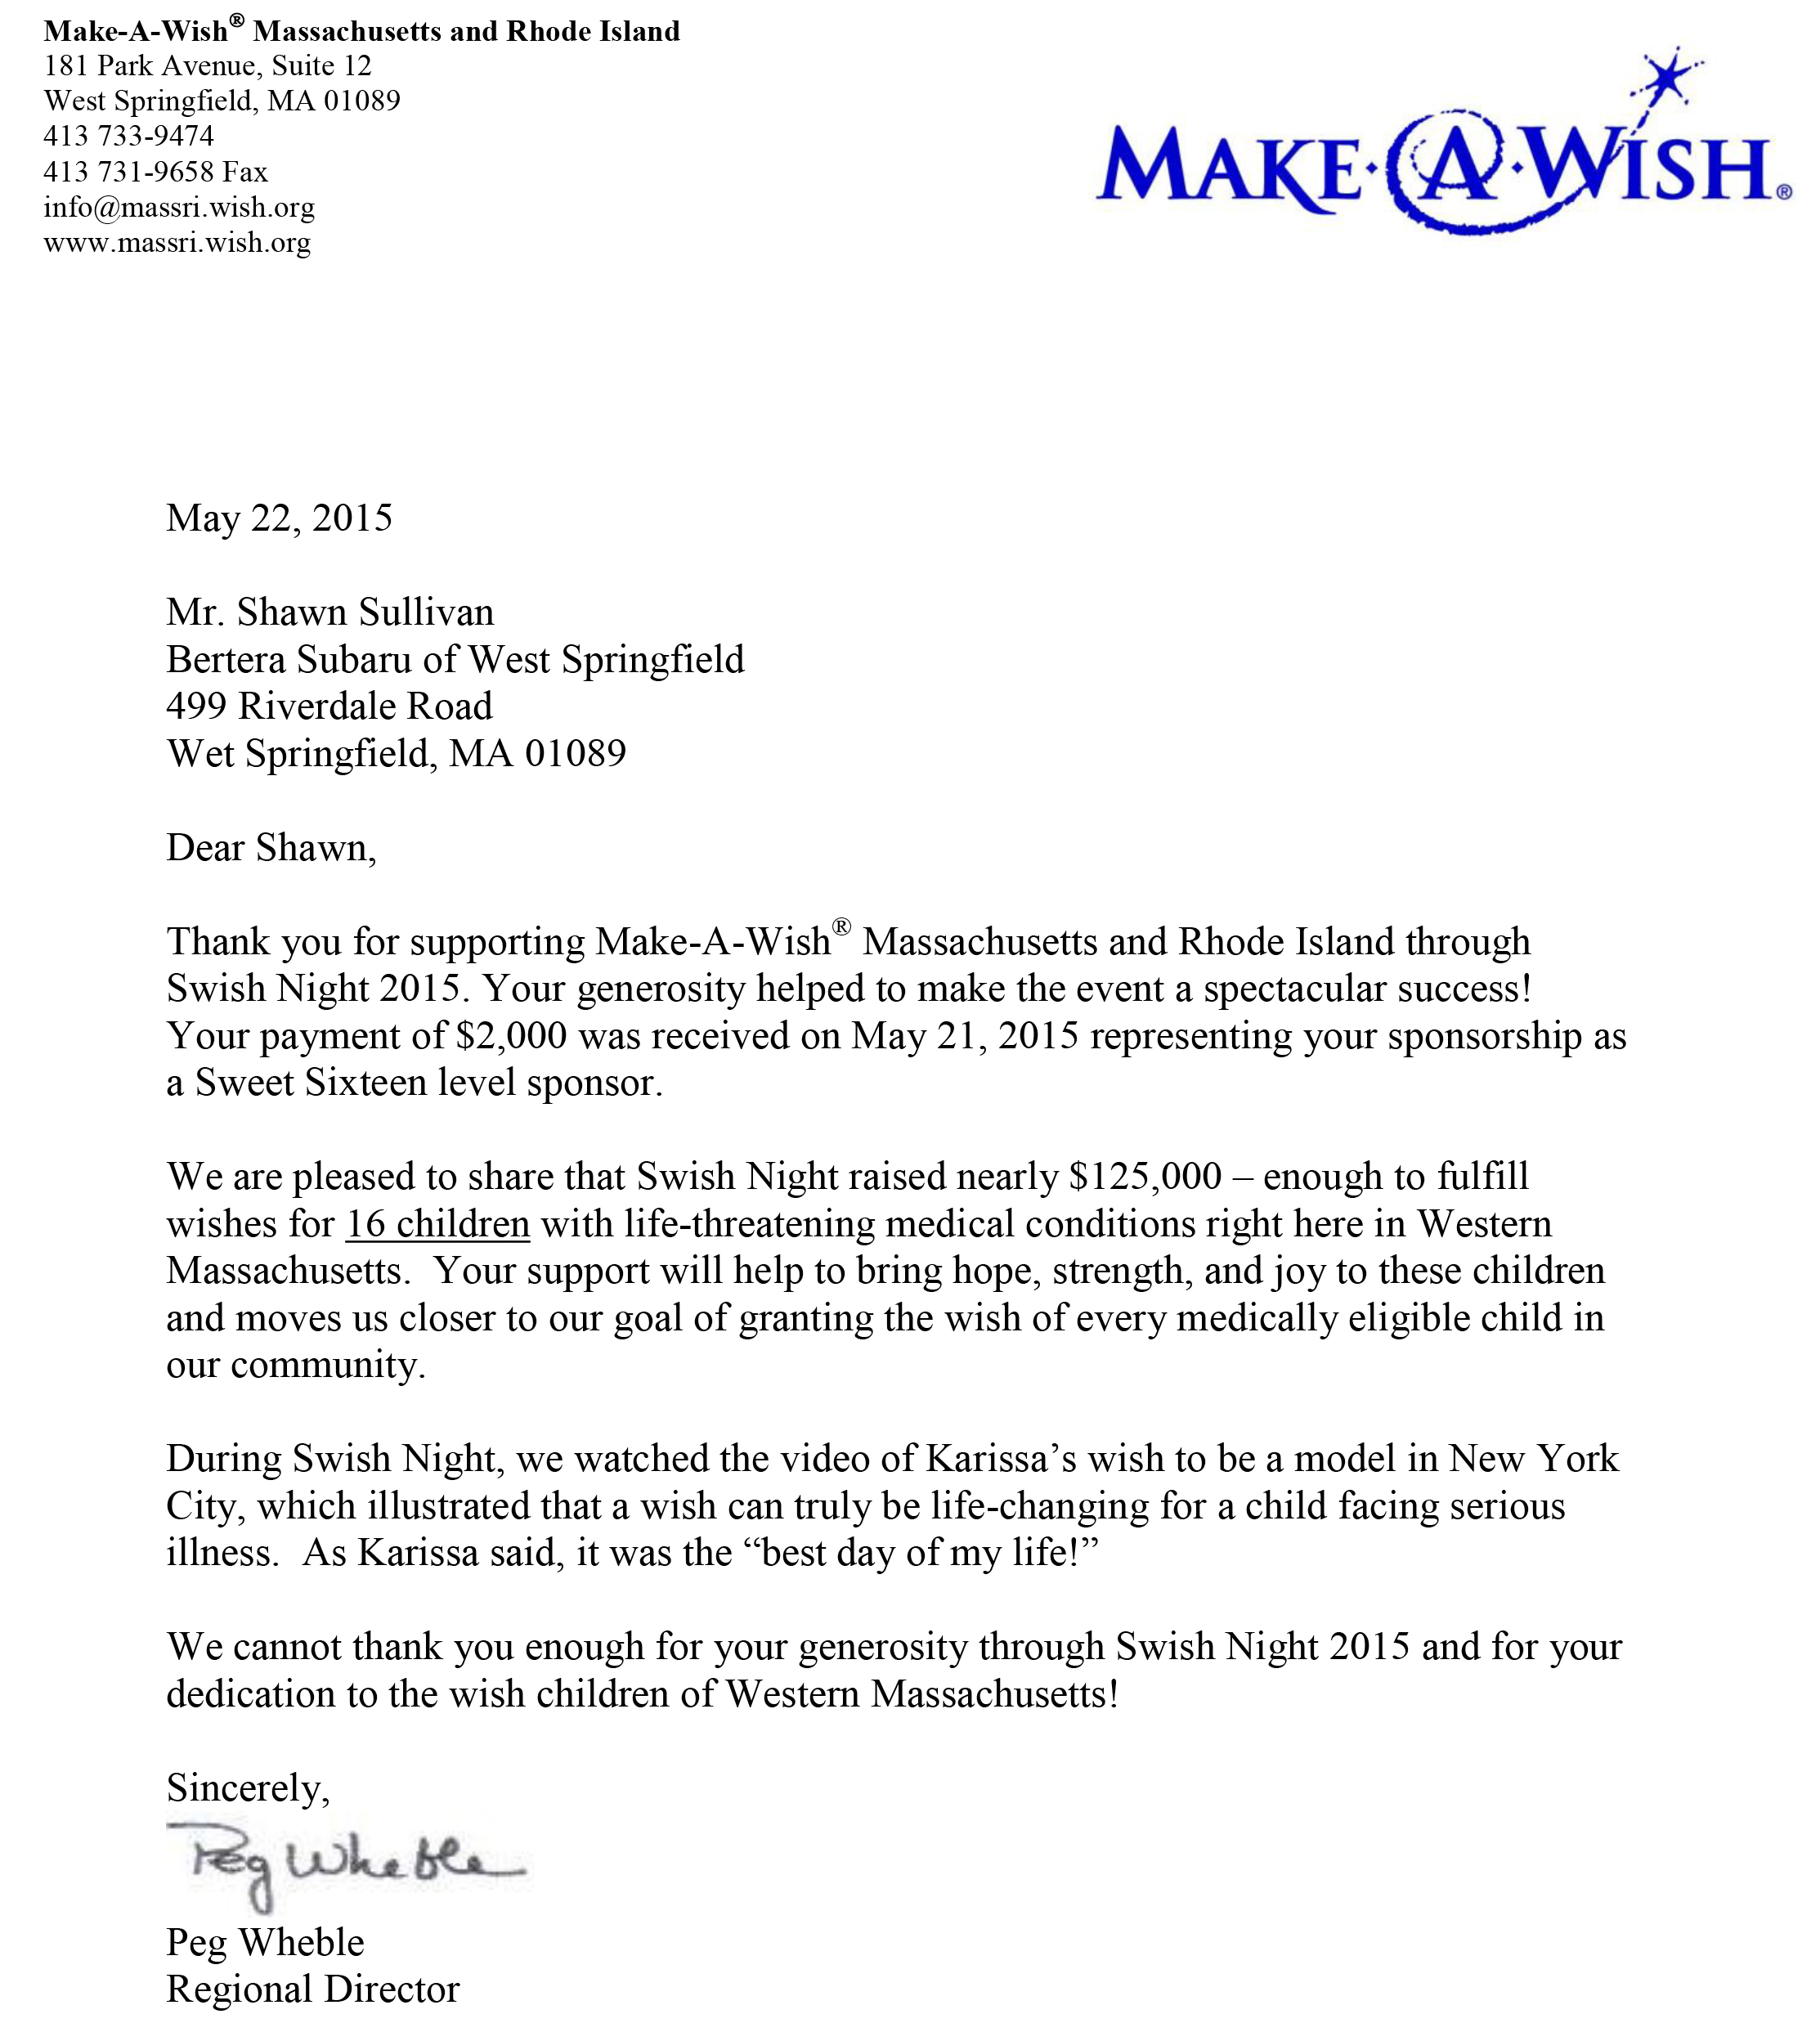 A Big Thanks From Make-A-Wish Massachusetts And Rhode